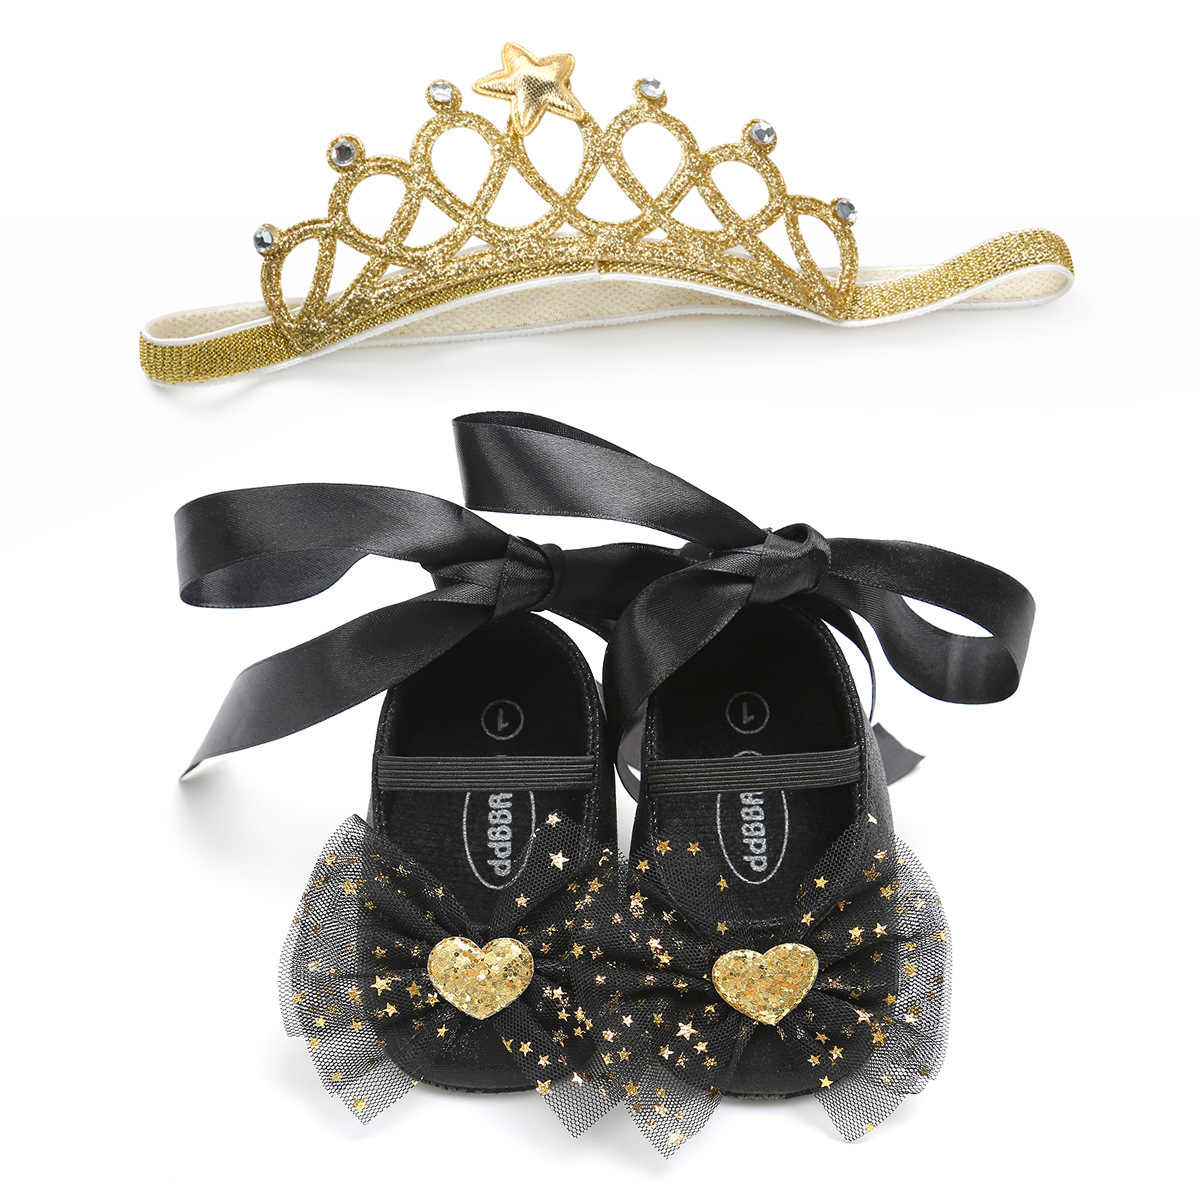 1 Set Newborn Baby Girl Princess Shoes+Headband Infant Toddler Sequin Bow Lace-up Bling Birthday Party Prewalkers Gift